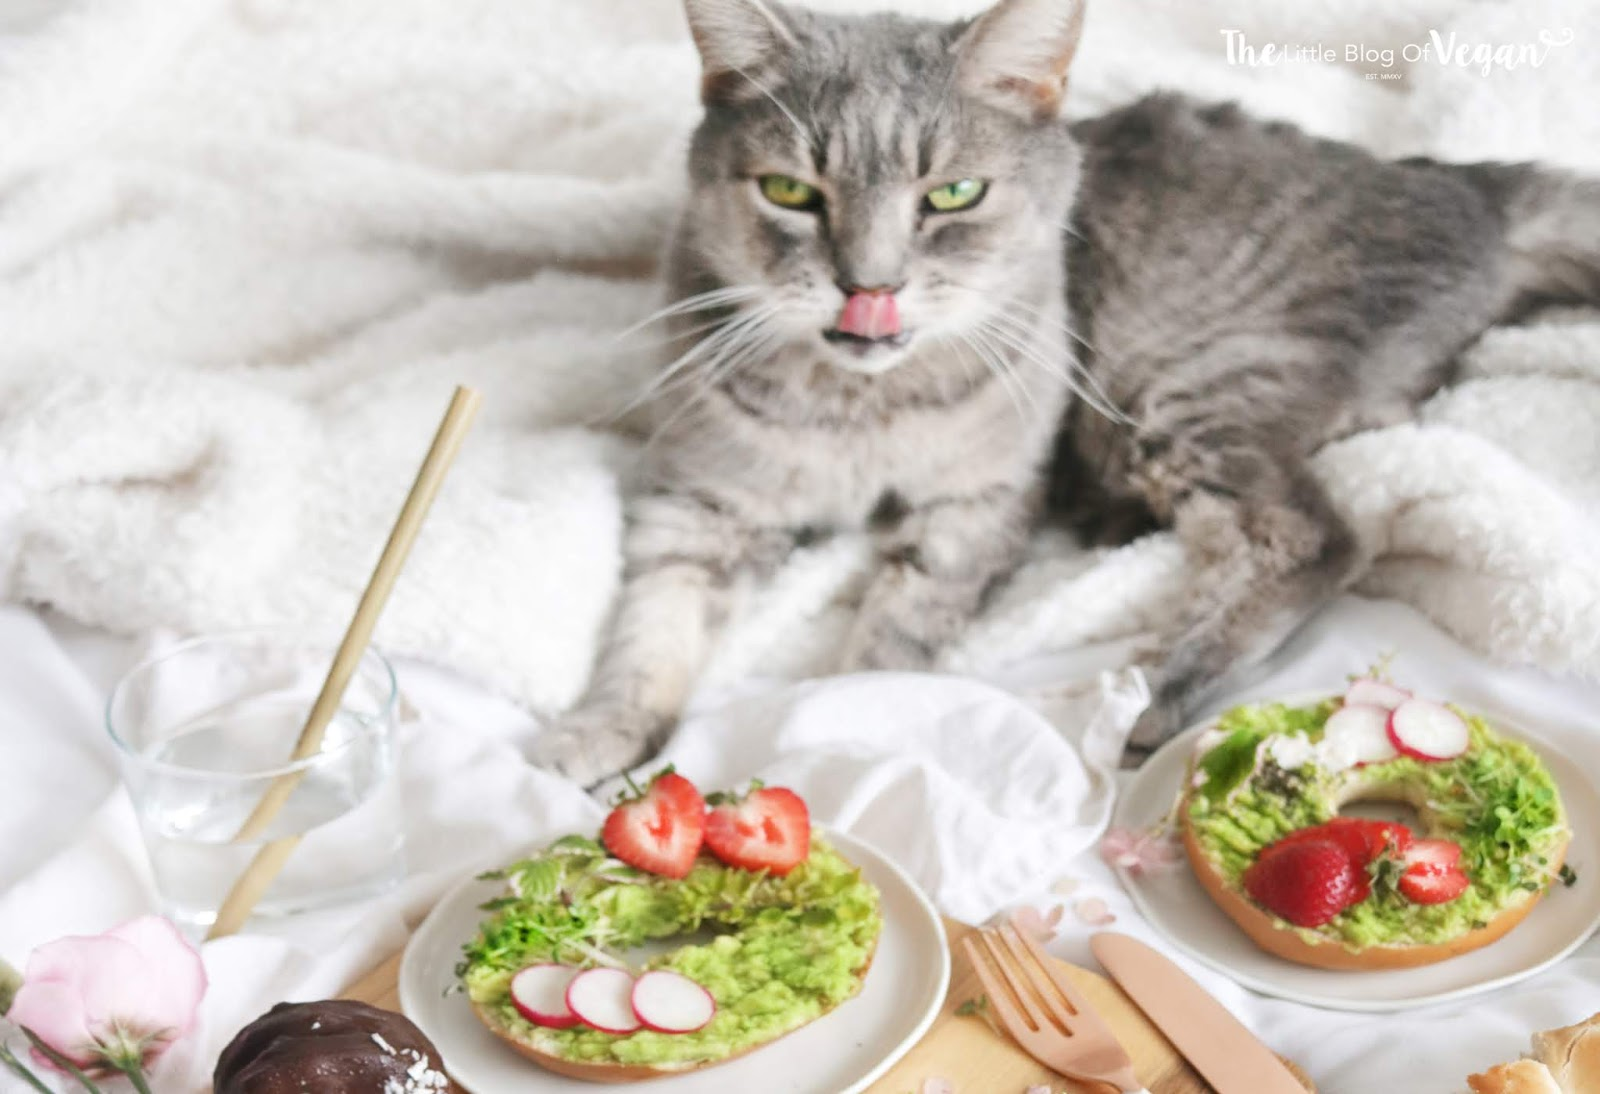 Date night with my cat & Avocado bagels recipe